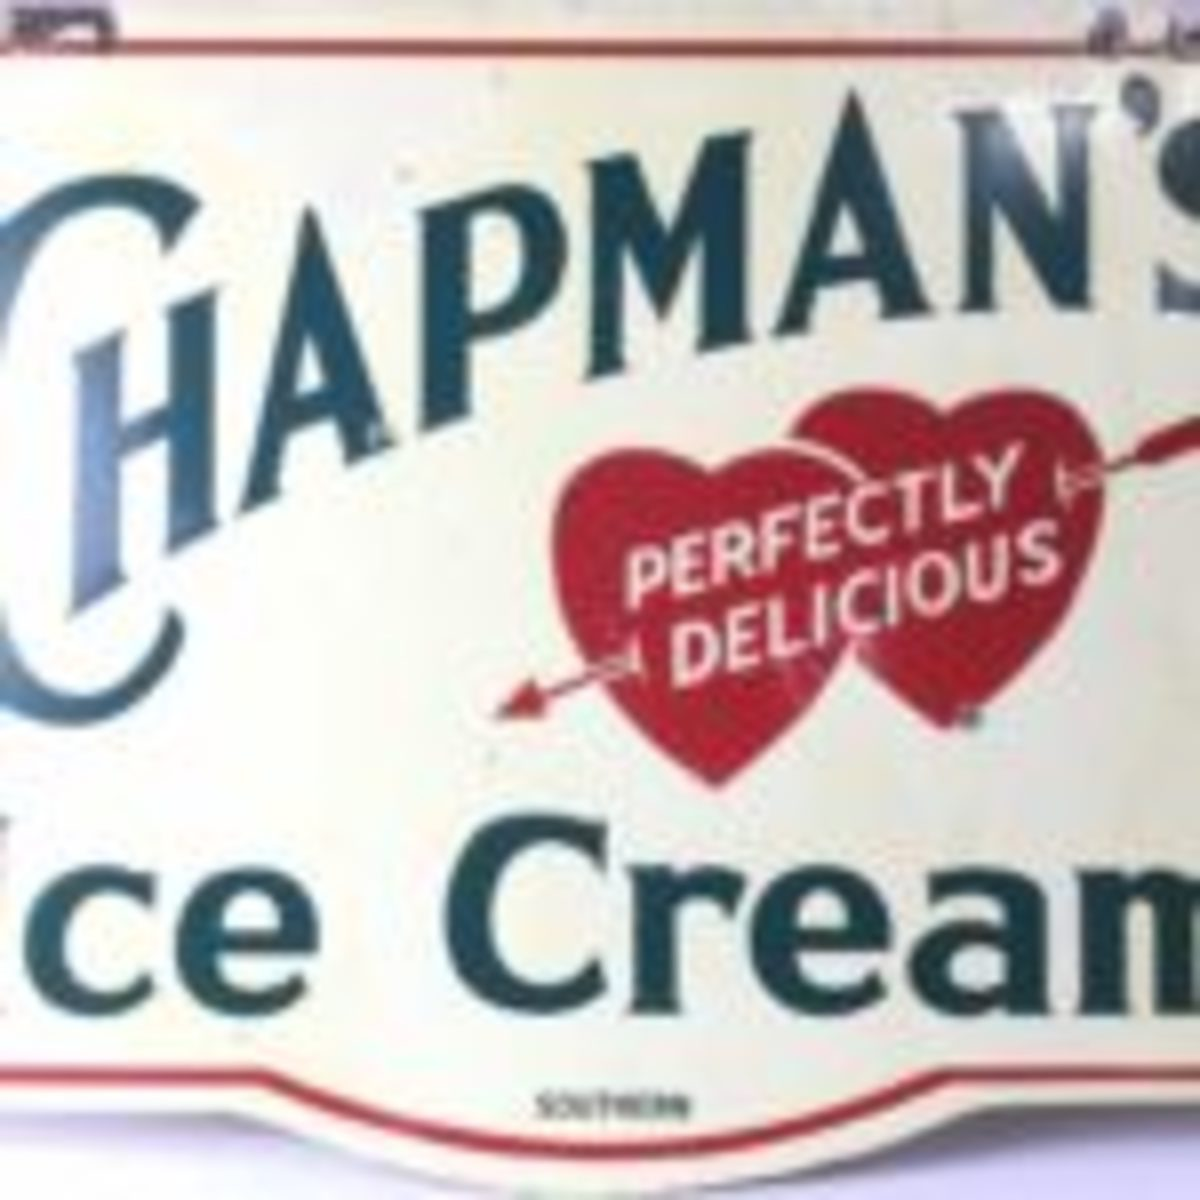 "Chapman's Perfectly Delicious Ice Cream. Measures Approximately 28"" X 36"" All images courtesy of EJ's Auctions"